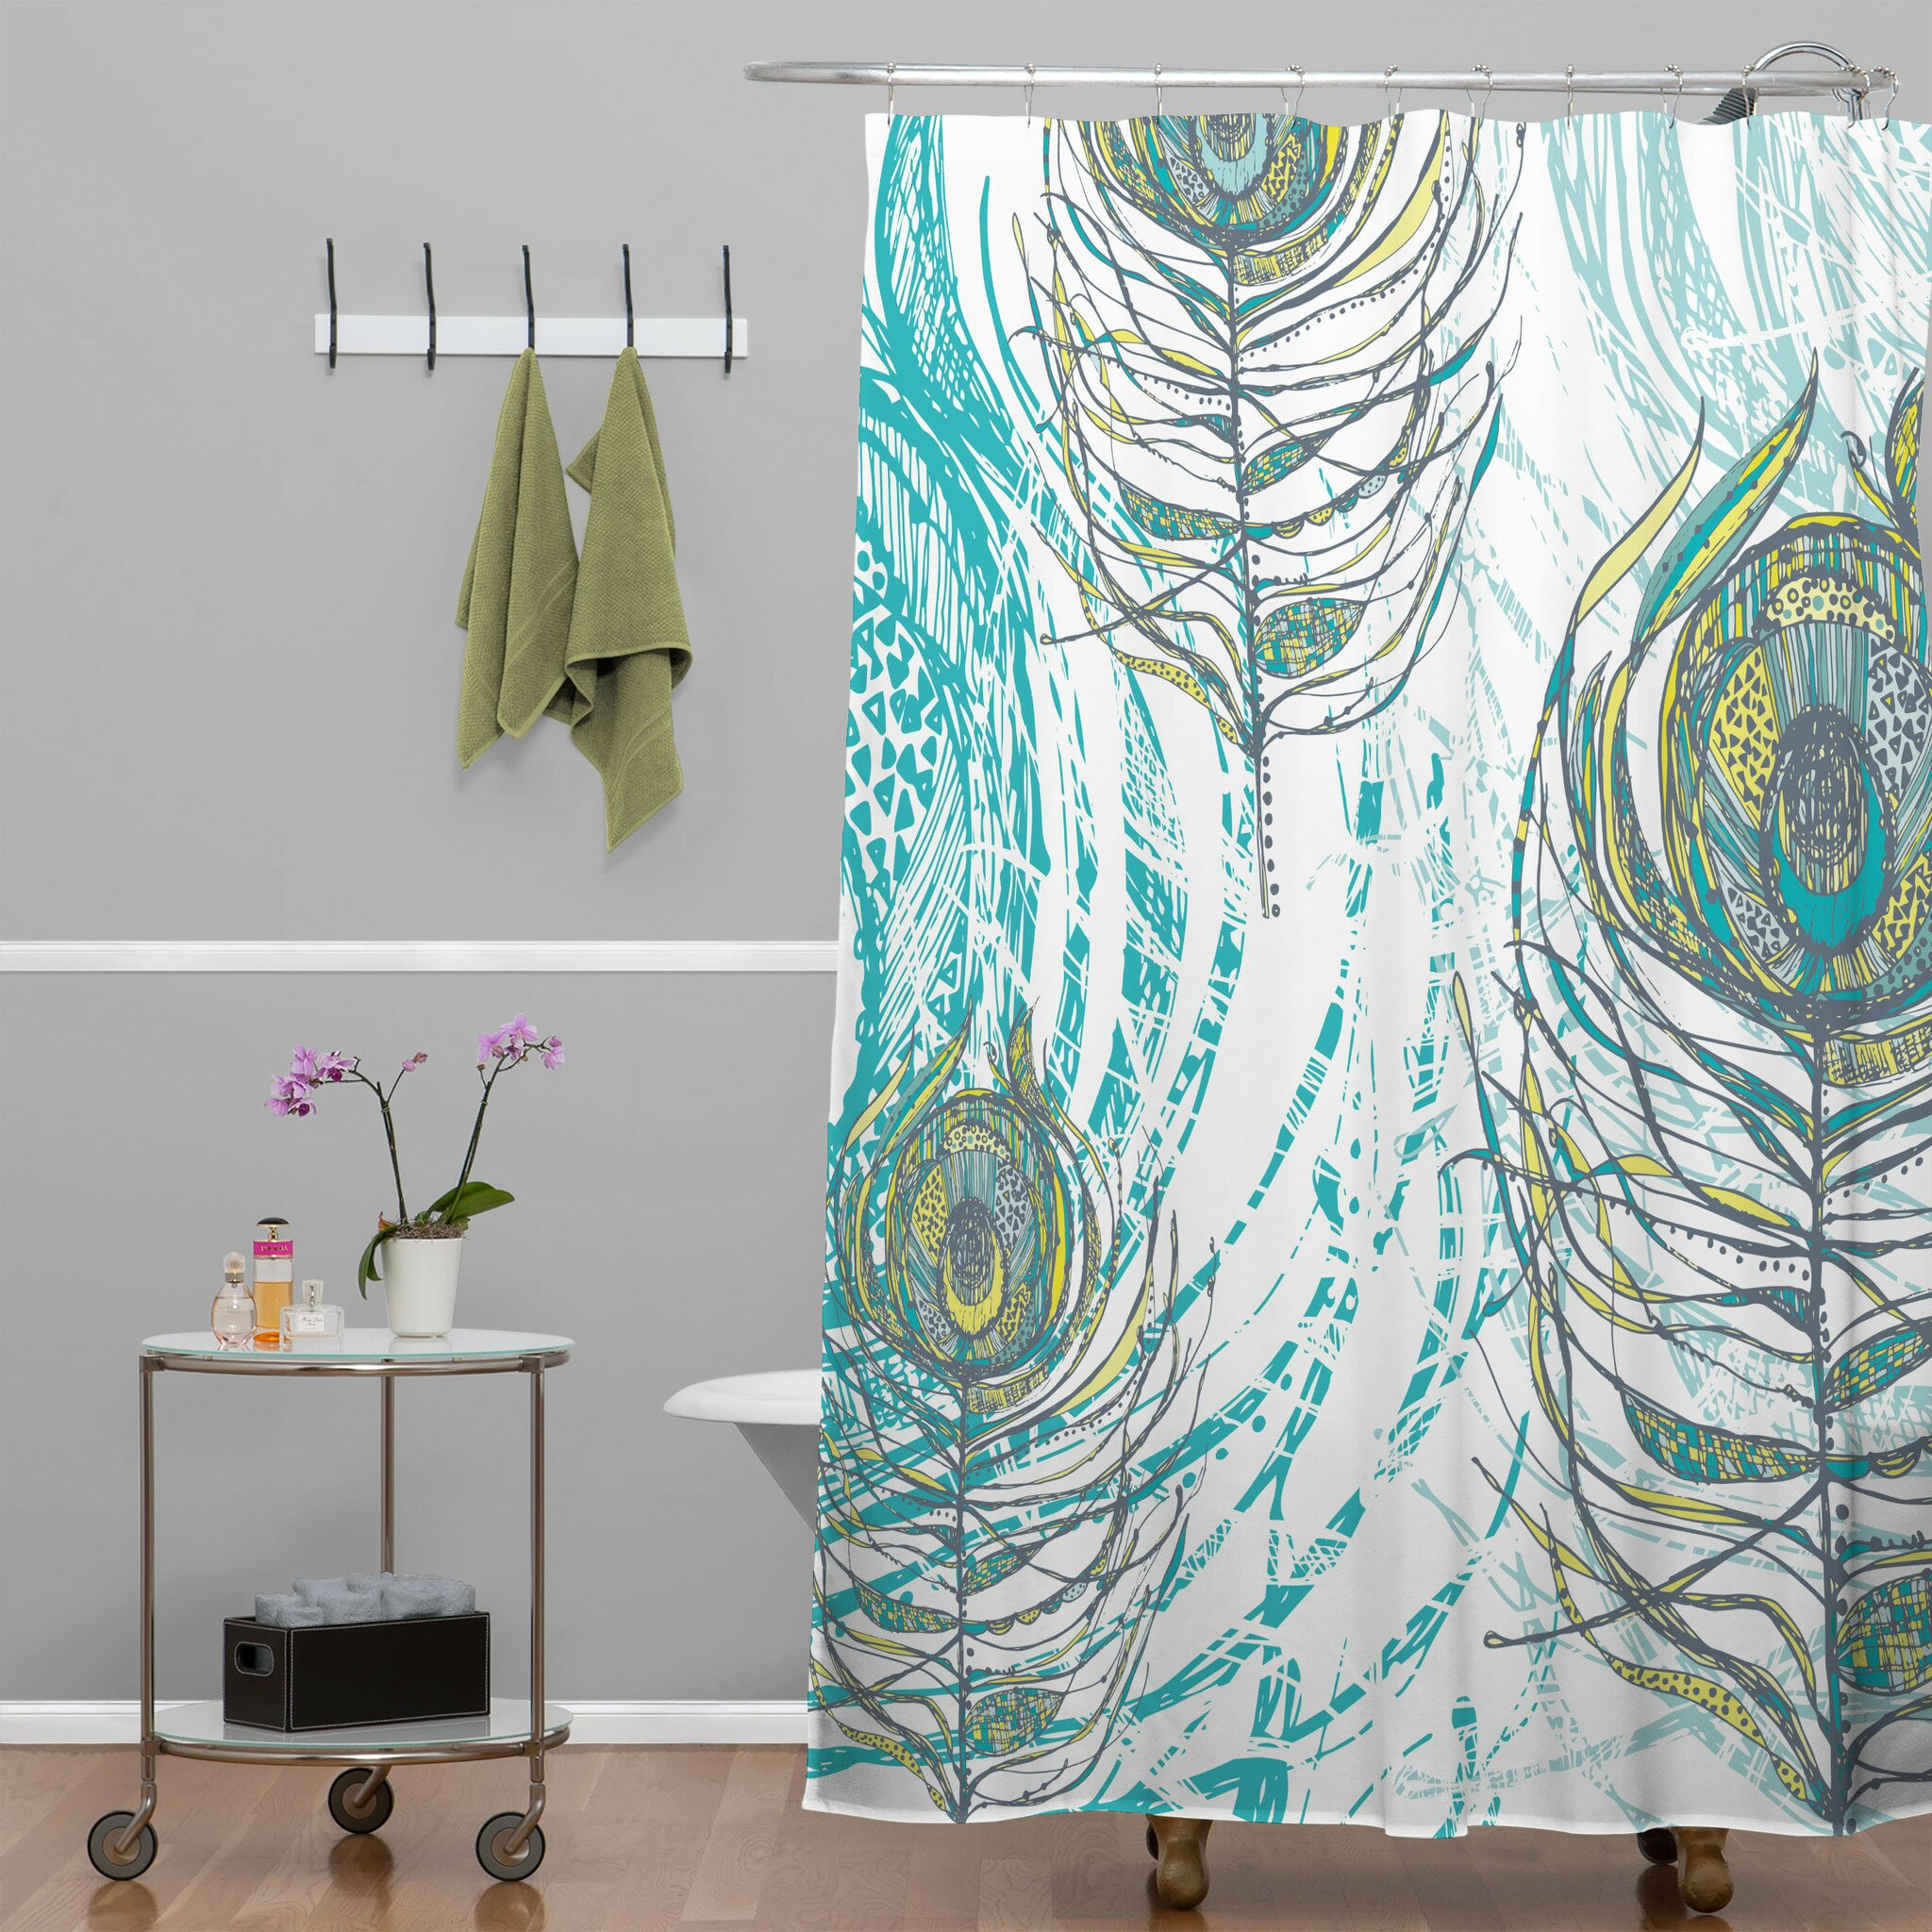 Neutral Shower Curtains | Walmart Shower Curtain | Shower Curtains Walmart